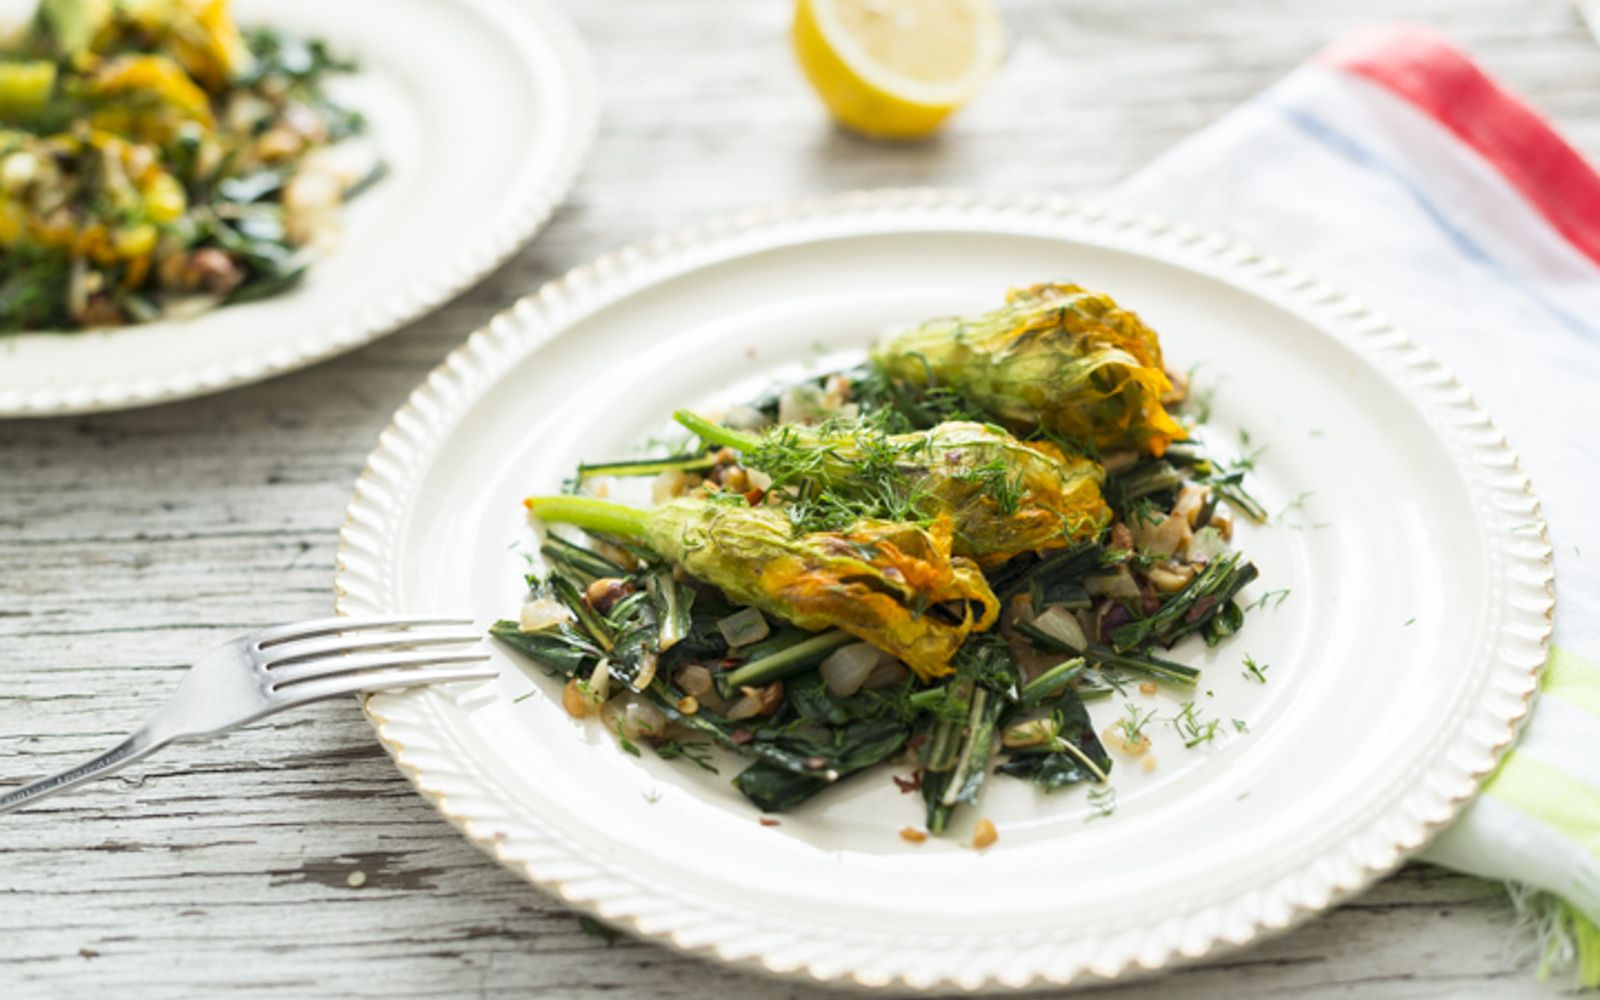 These stuffed squash blossoms were made with a mixture of corn, okra, asparagus, dill, and garlic.